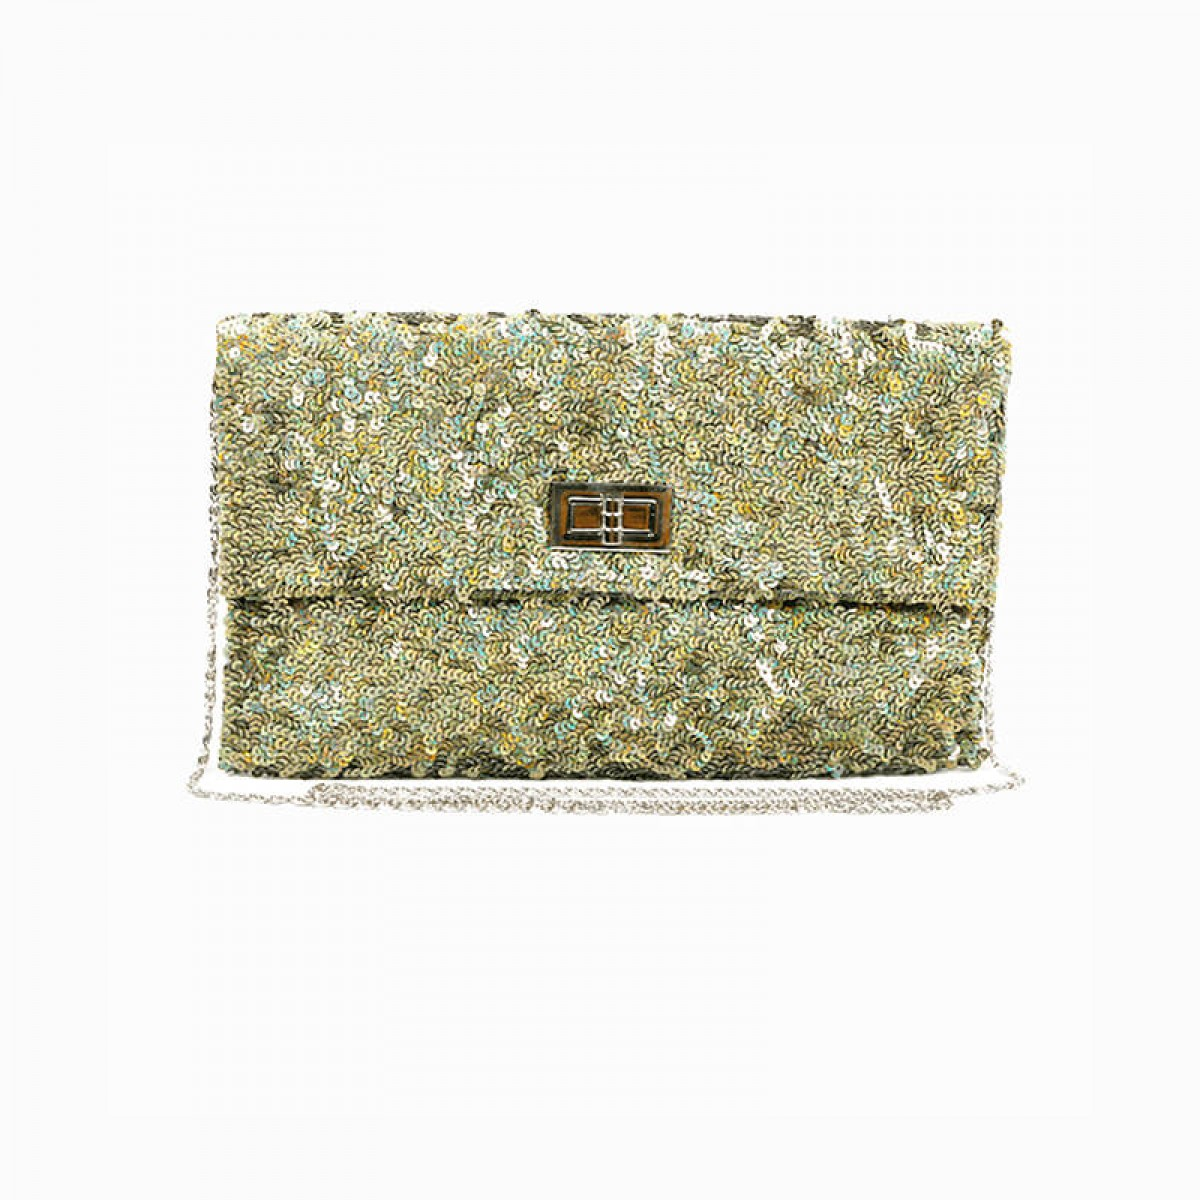 Sequin Clutch Bag - Olive